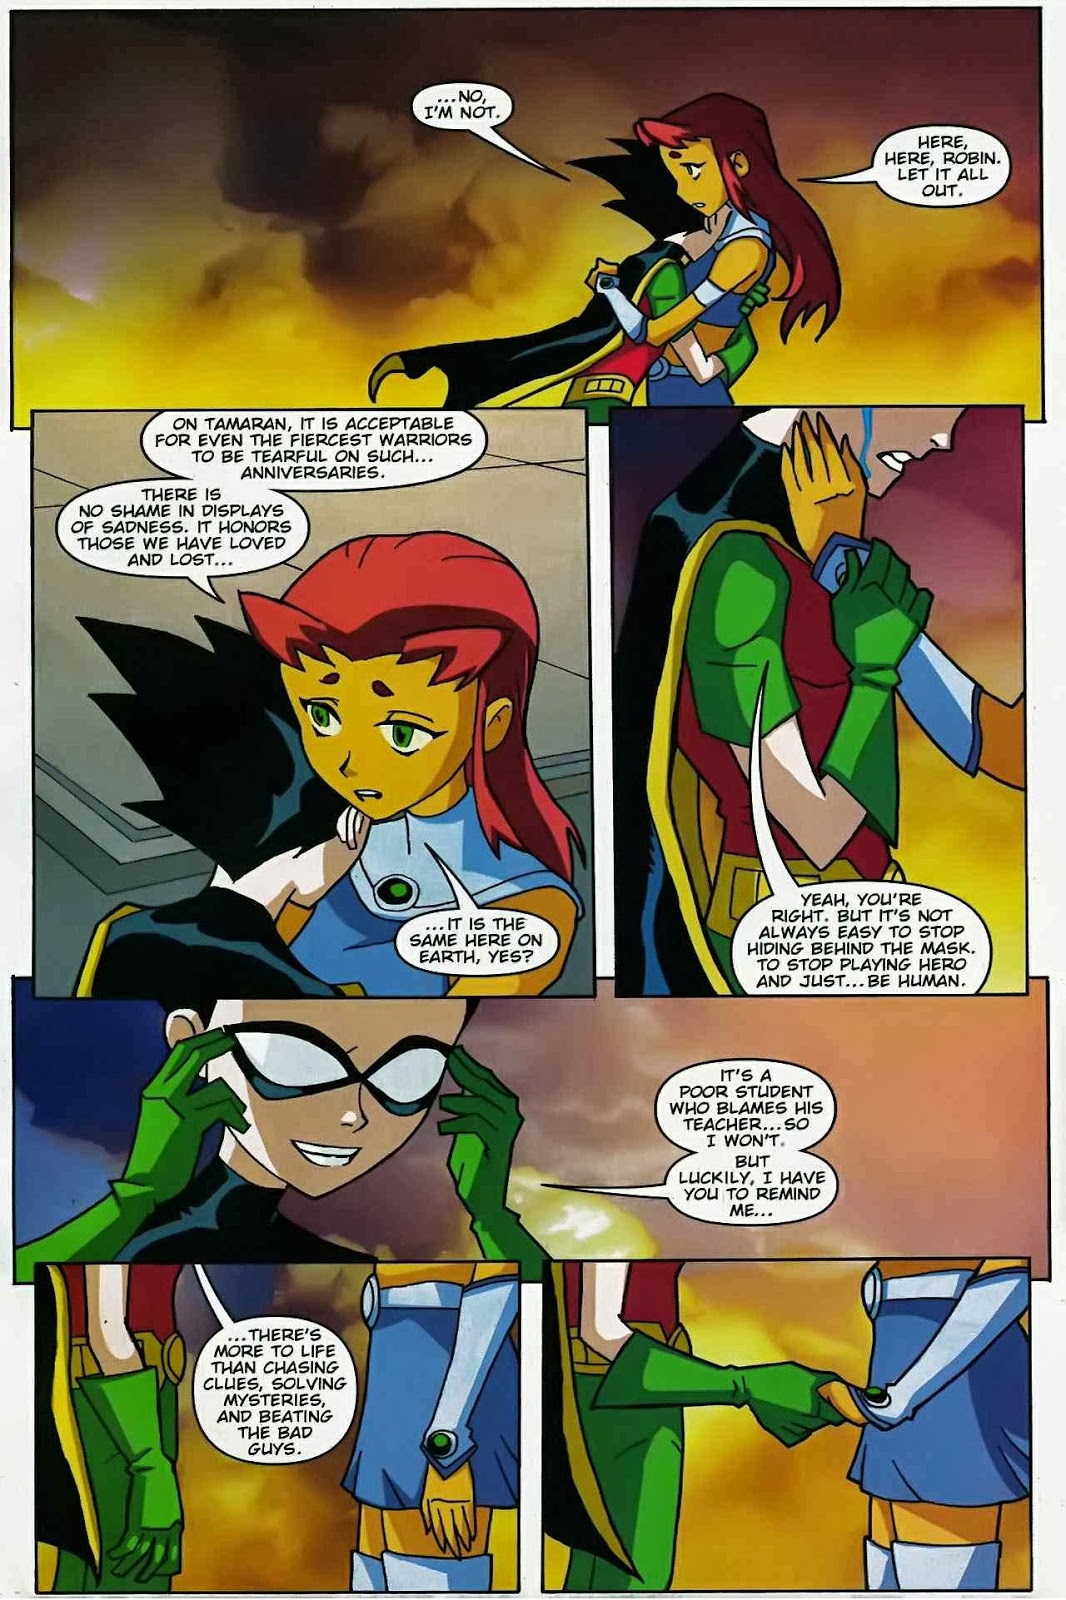 Book series teen titans go issue 47 regarding robin one morning